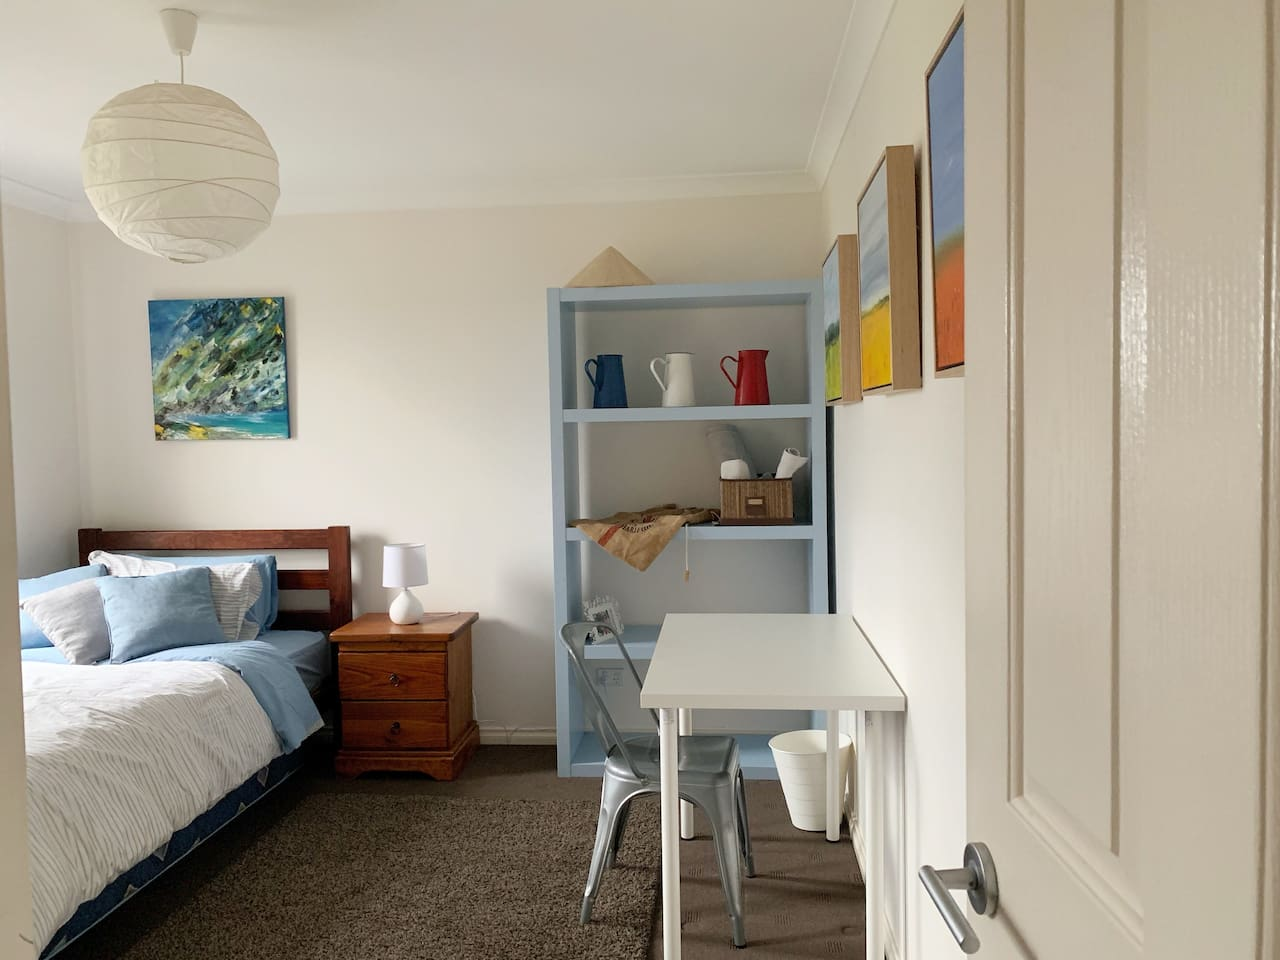 Fully furnished room with a king single bed and everything you need for a pleasant stay